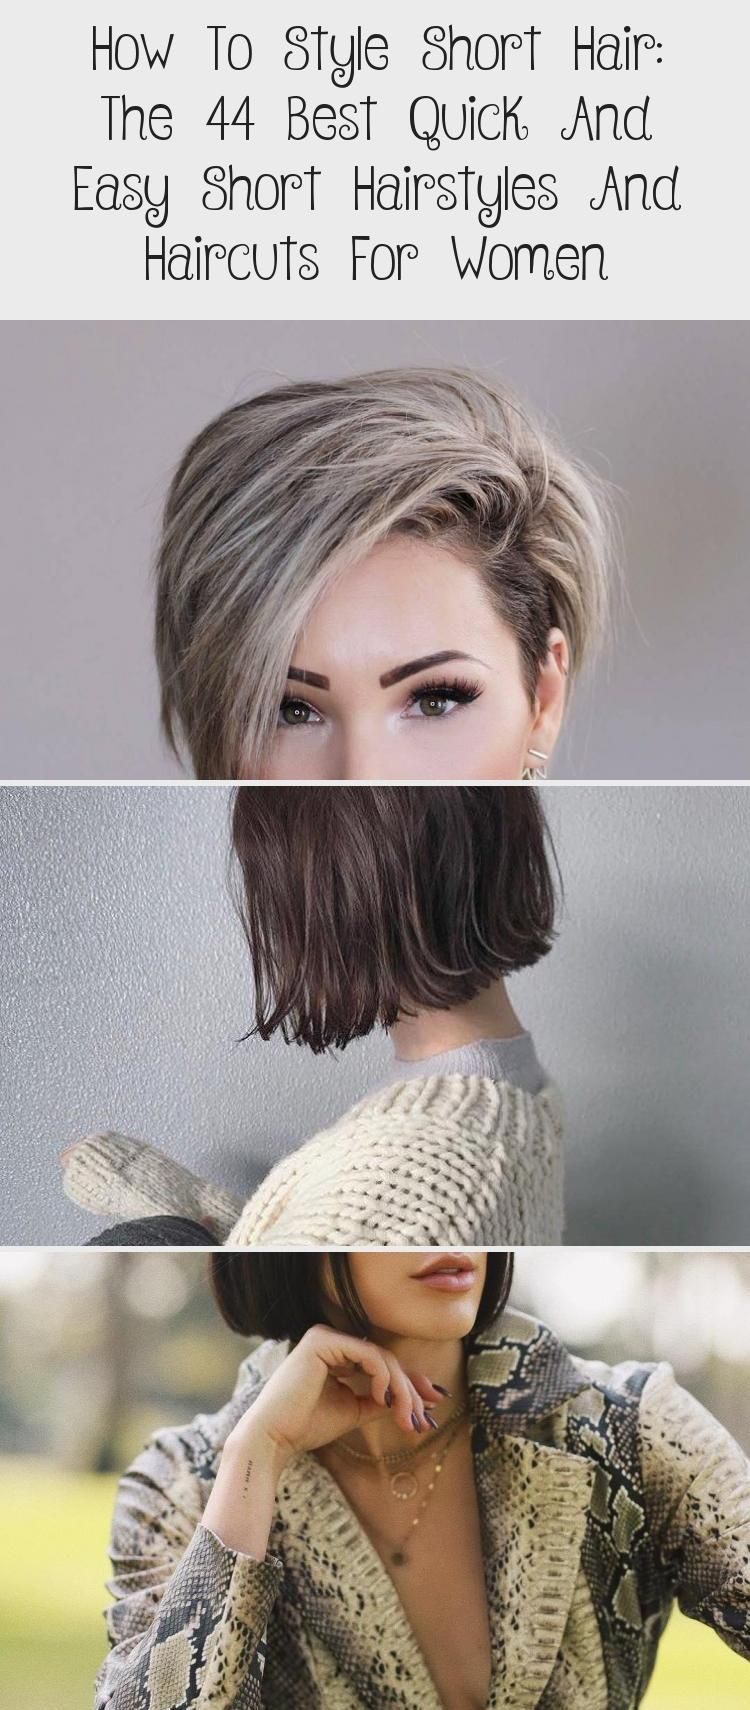 How To Style Short Hair: The 44 Best Quick And Easy Short Hairstyles And Haircuts For Women - Hairstyle #easyshorthairstyles